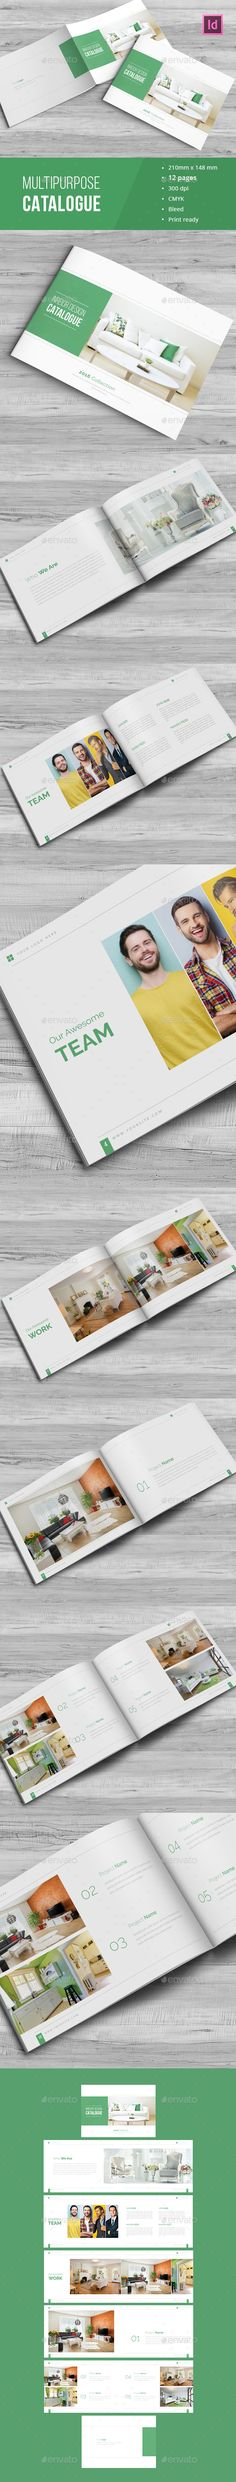 Haweya Landscape Brochure 16 Pages V03 Brochures, Corporate - landscape brochure